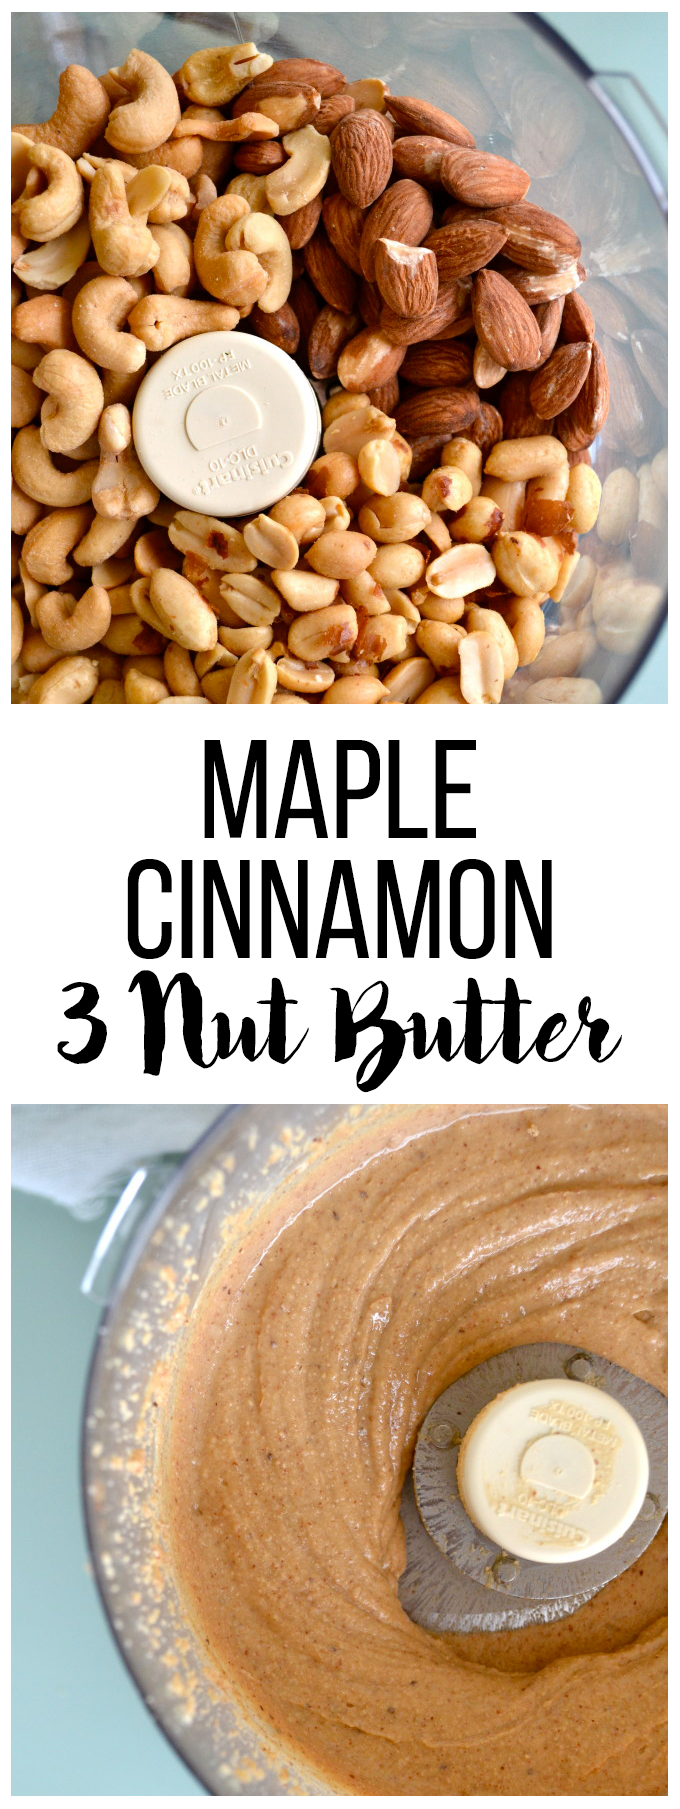 This Maple Cinnamon 3 Nut Butter is the paleo and filled for real food flavor!